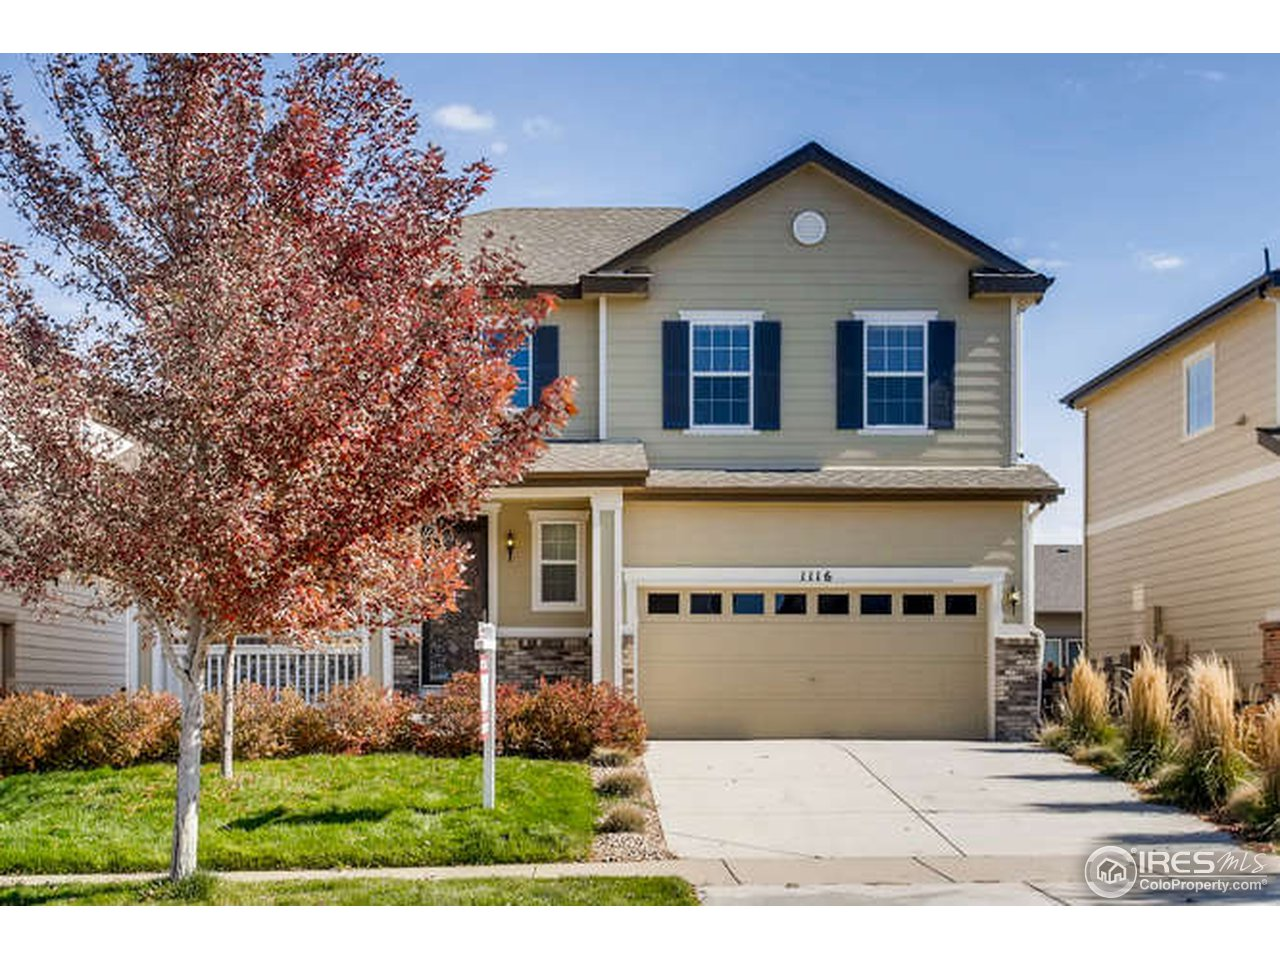 Wonderfully-upgraded 2 story home in West Greeley with Windsor schools. Easy access to I-25 Loveland, Windsor, Fort Collins. Enjoy the parks and green-belts that are all around the neighborhood, or enjoy a BBQ on the patio outback. Wide open main floor features a cooks kitchen with double oven & large island opening the large great room - a wealth of space to cook, entertain, or just relax in ... and it's ready for immediate move in. Come see it before it's gone.